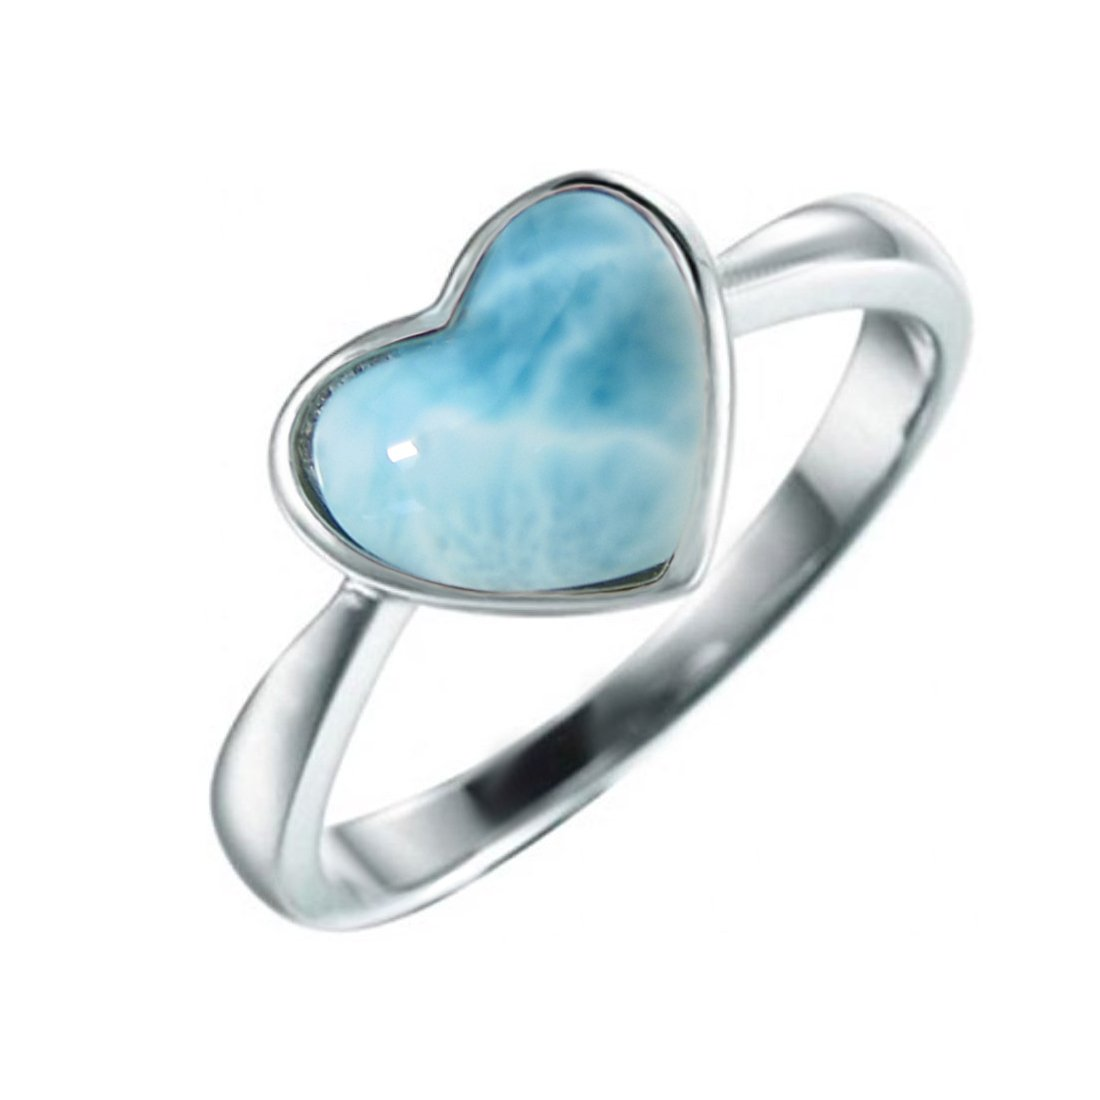 Size 8 Sterling Silver 925 Natural Larimar Heart Ring